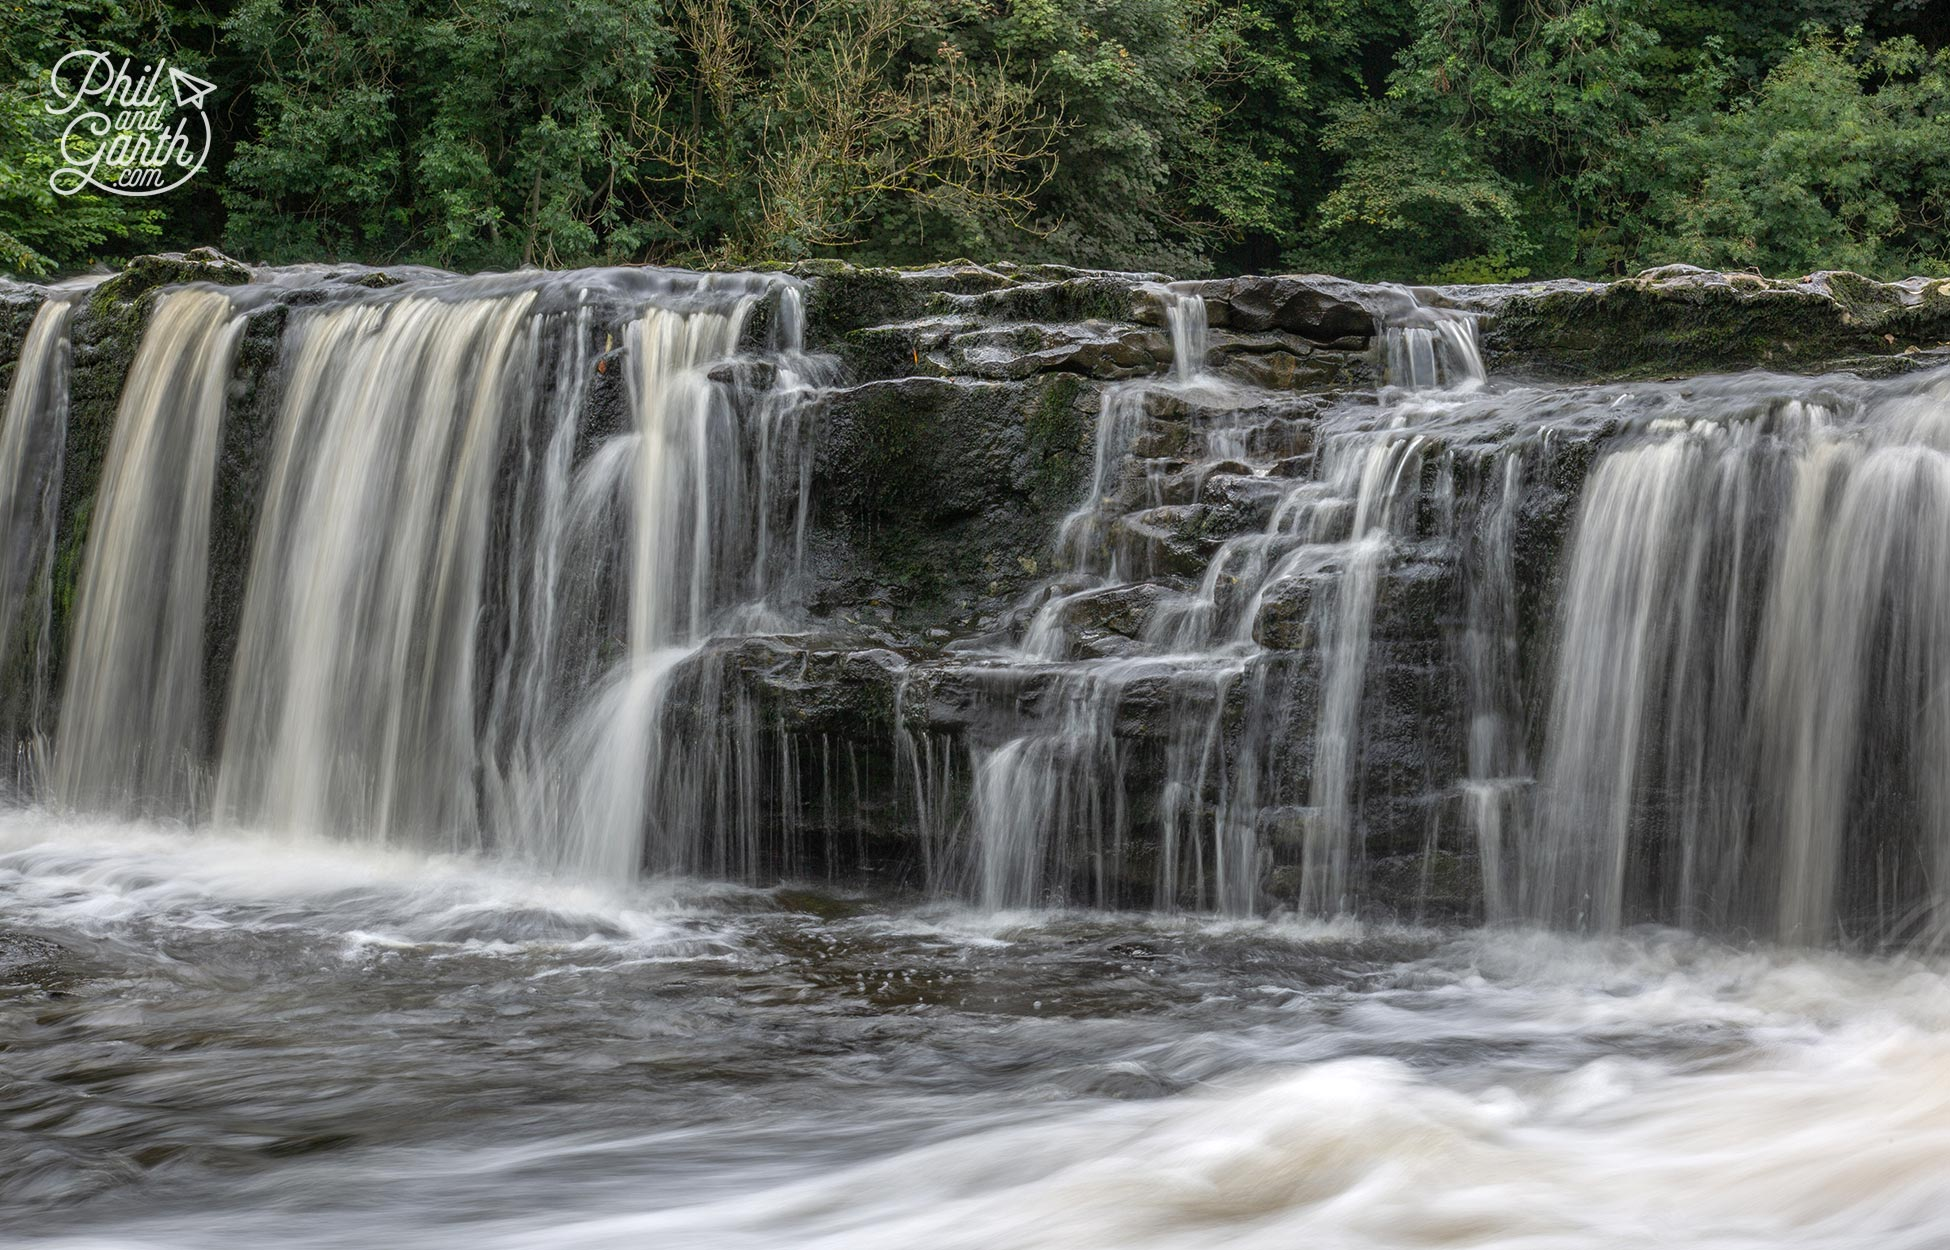 Aysgarth Falls is best seen in the Winter after heavy rain